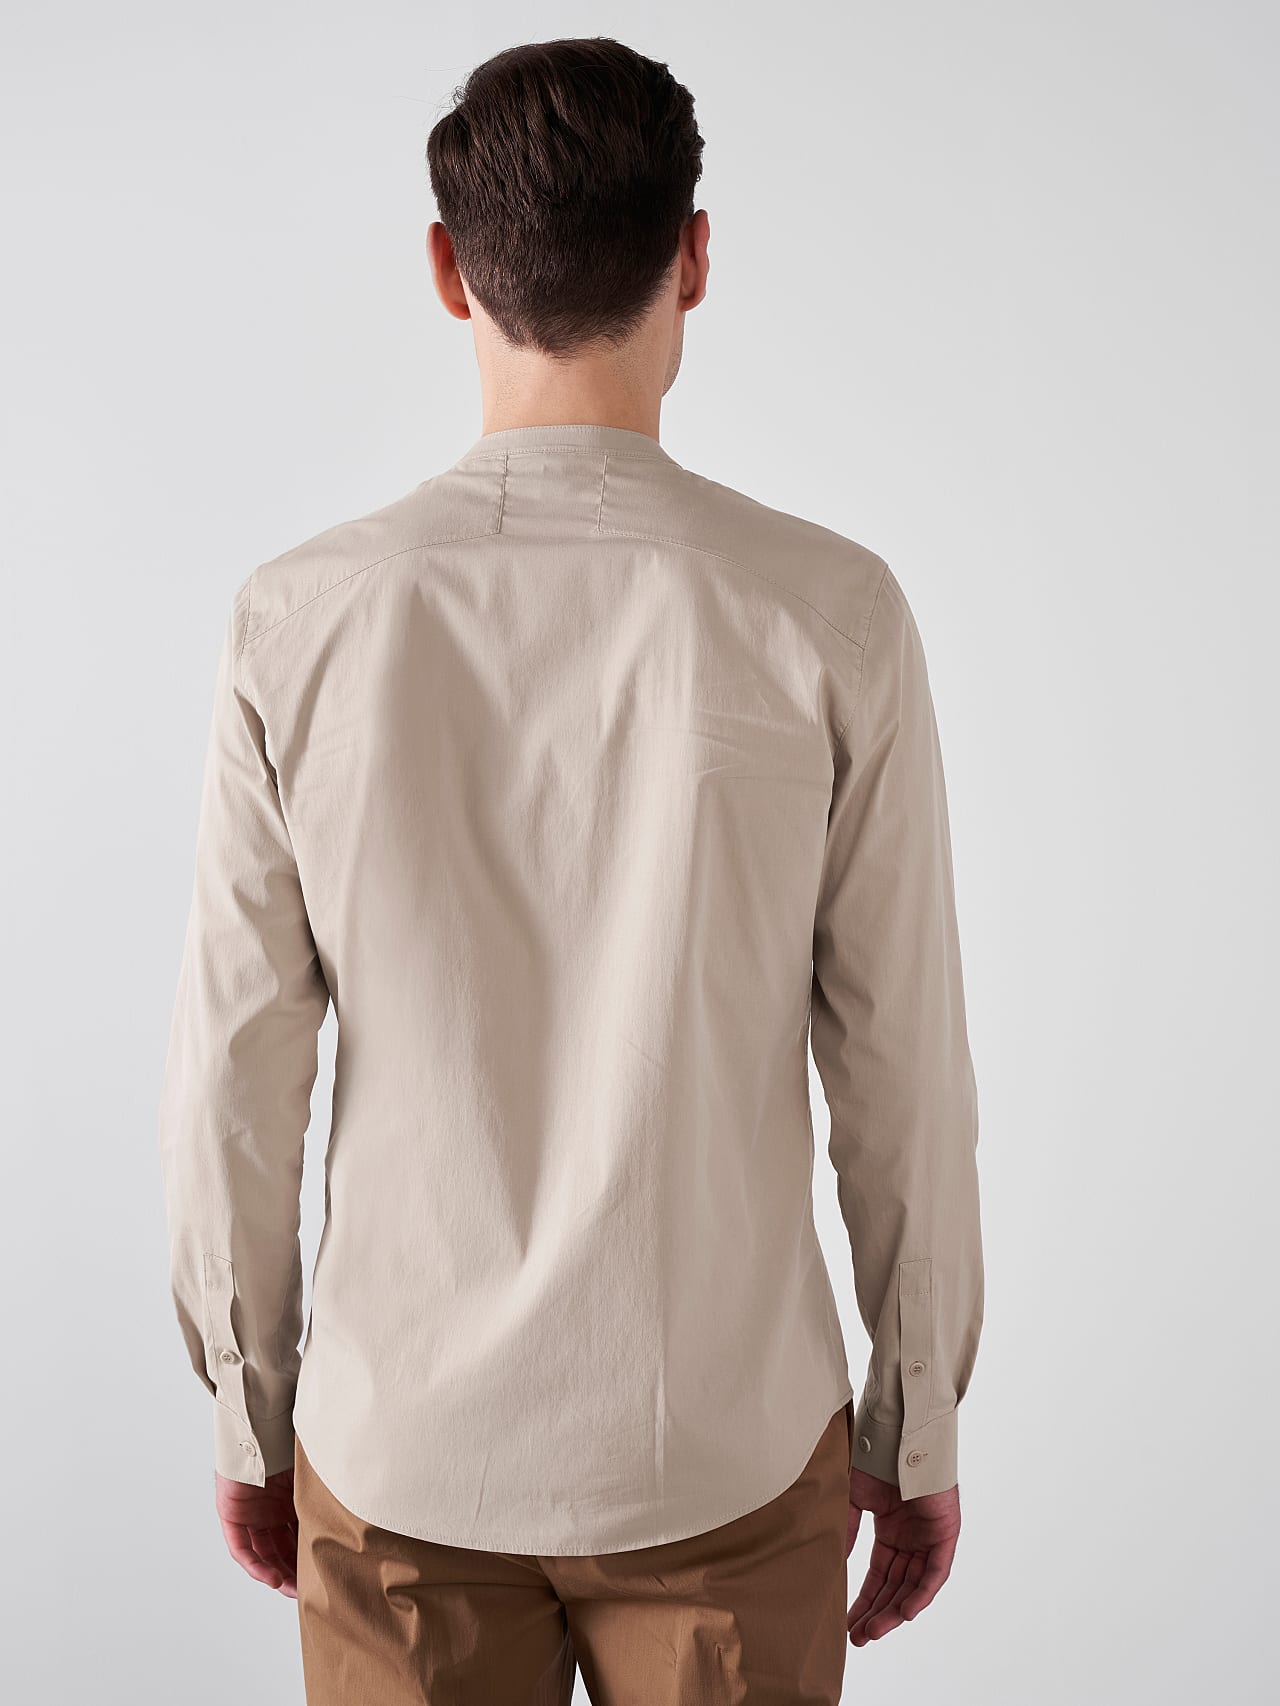 WIDT V9.Y5.01 Stand-Up Collar Cotton-Stretch Shirt Sand Front Main Alpha Tauri